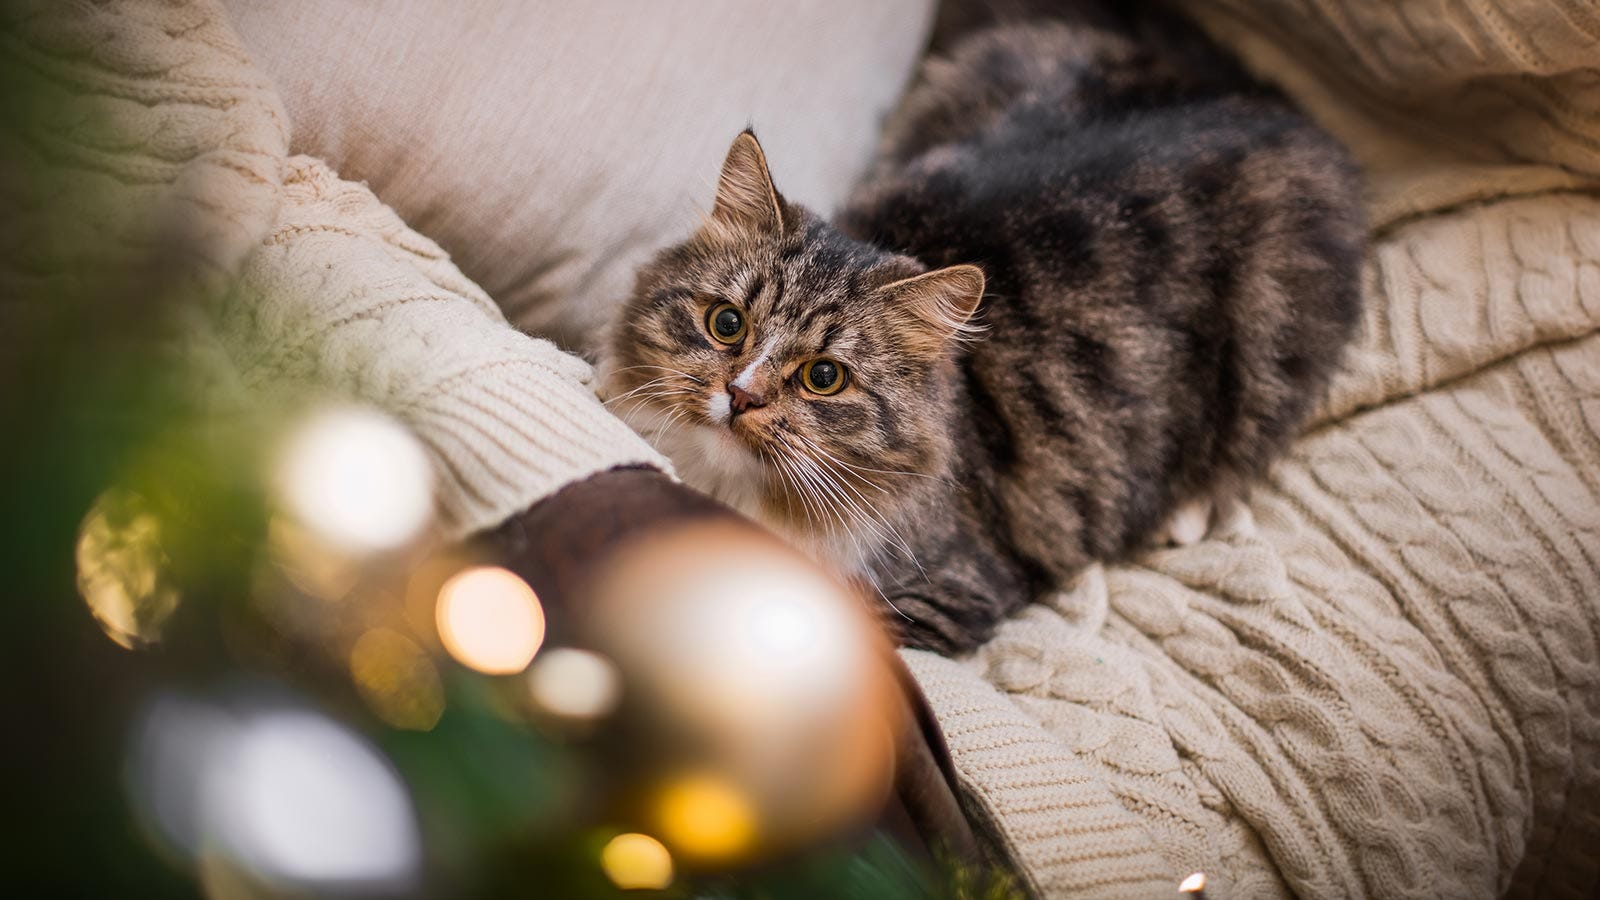 A tan and black tabby cat lying on a sofa with golden eyes fixed on the sparkly ornaments on a Christmas tree.